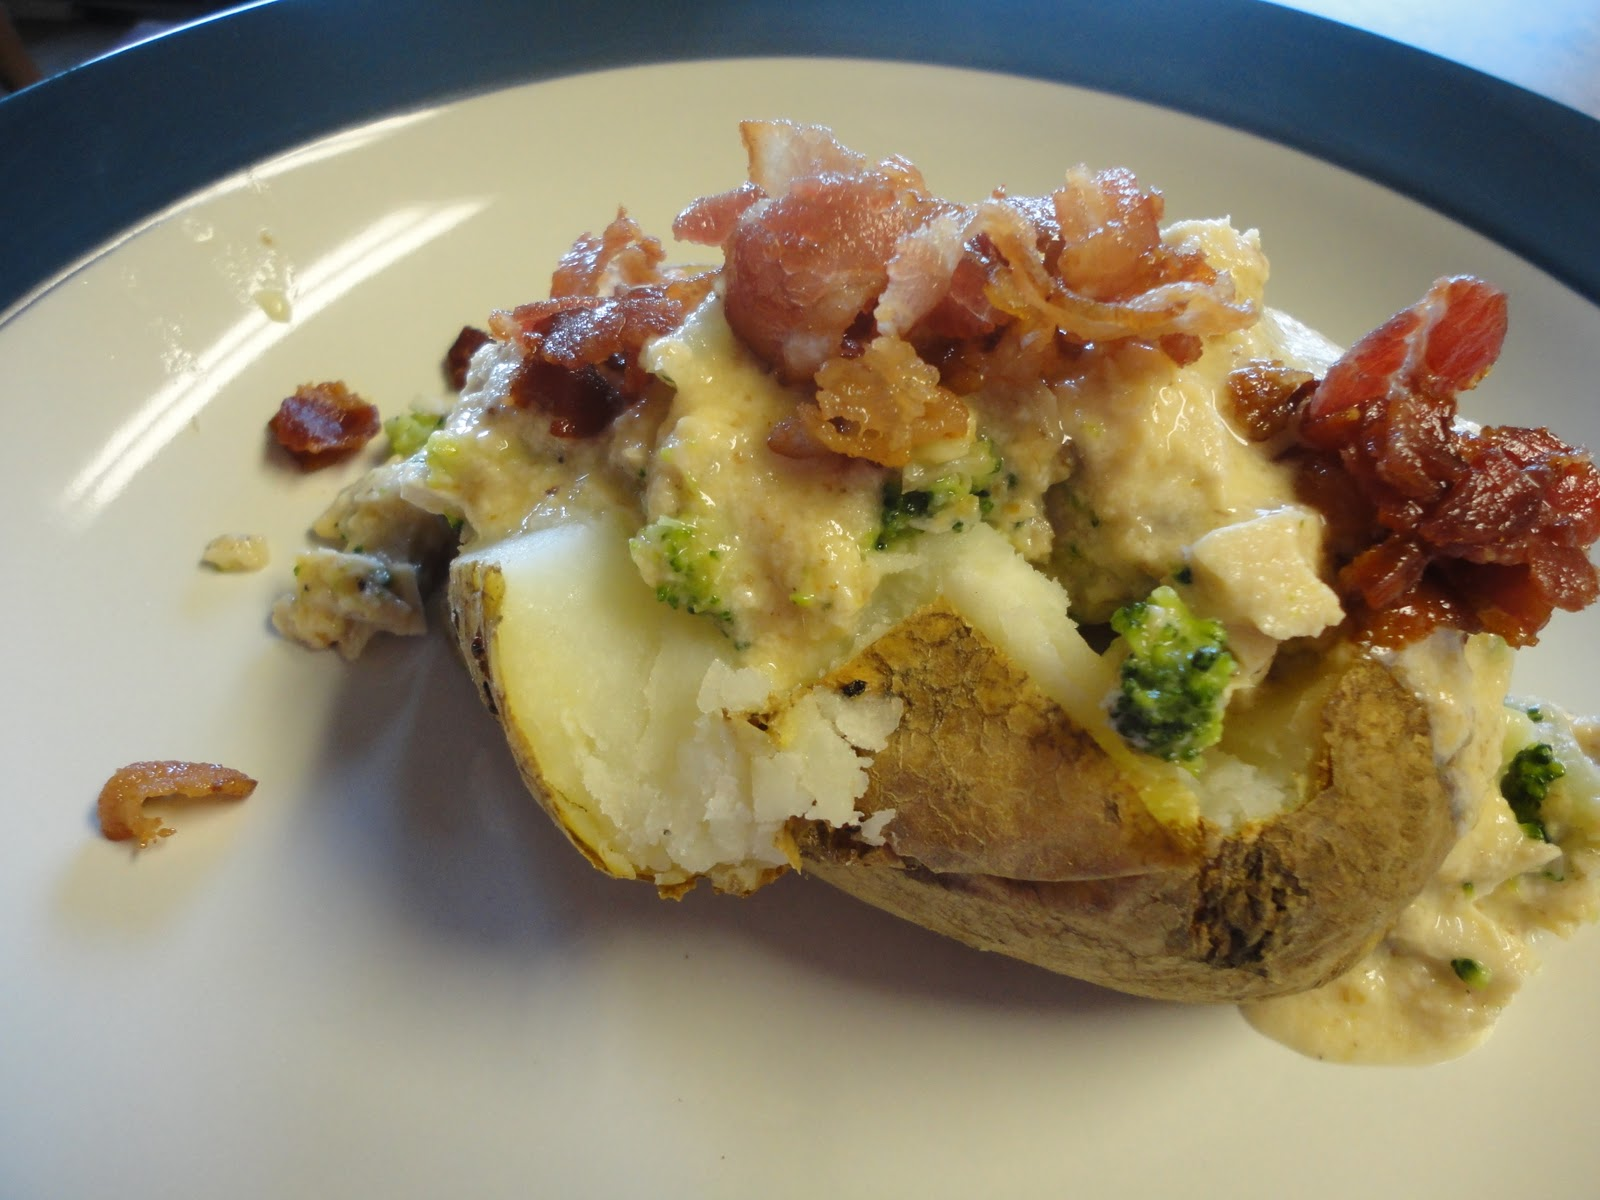 ... Frickin Chicken: Cheesy Chicken and Broccoli Stuffed Baked Potatoes